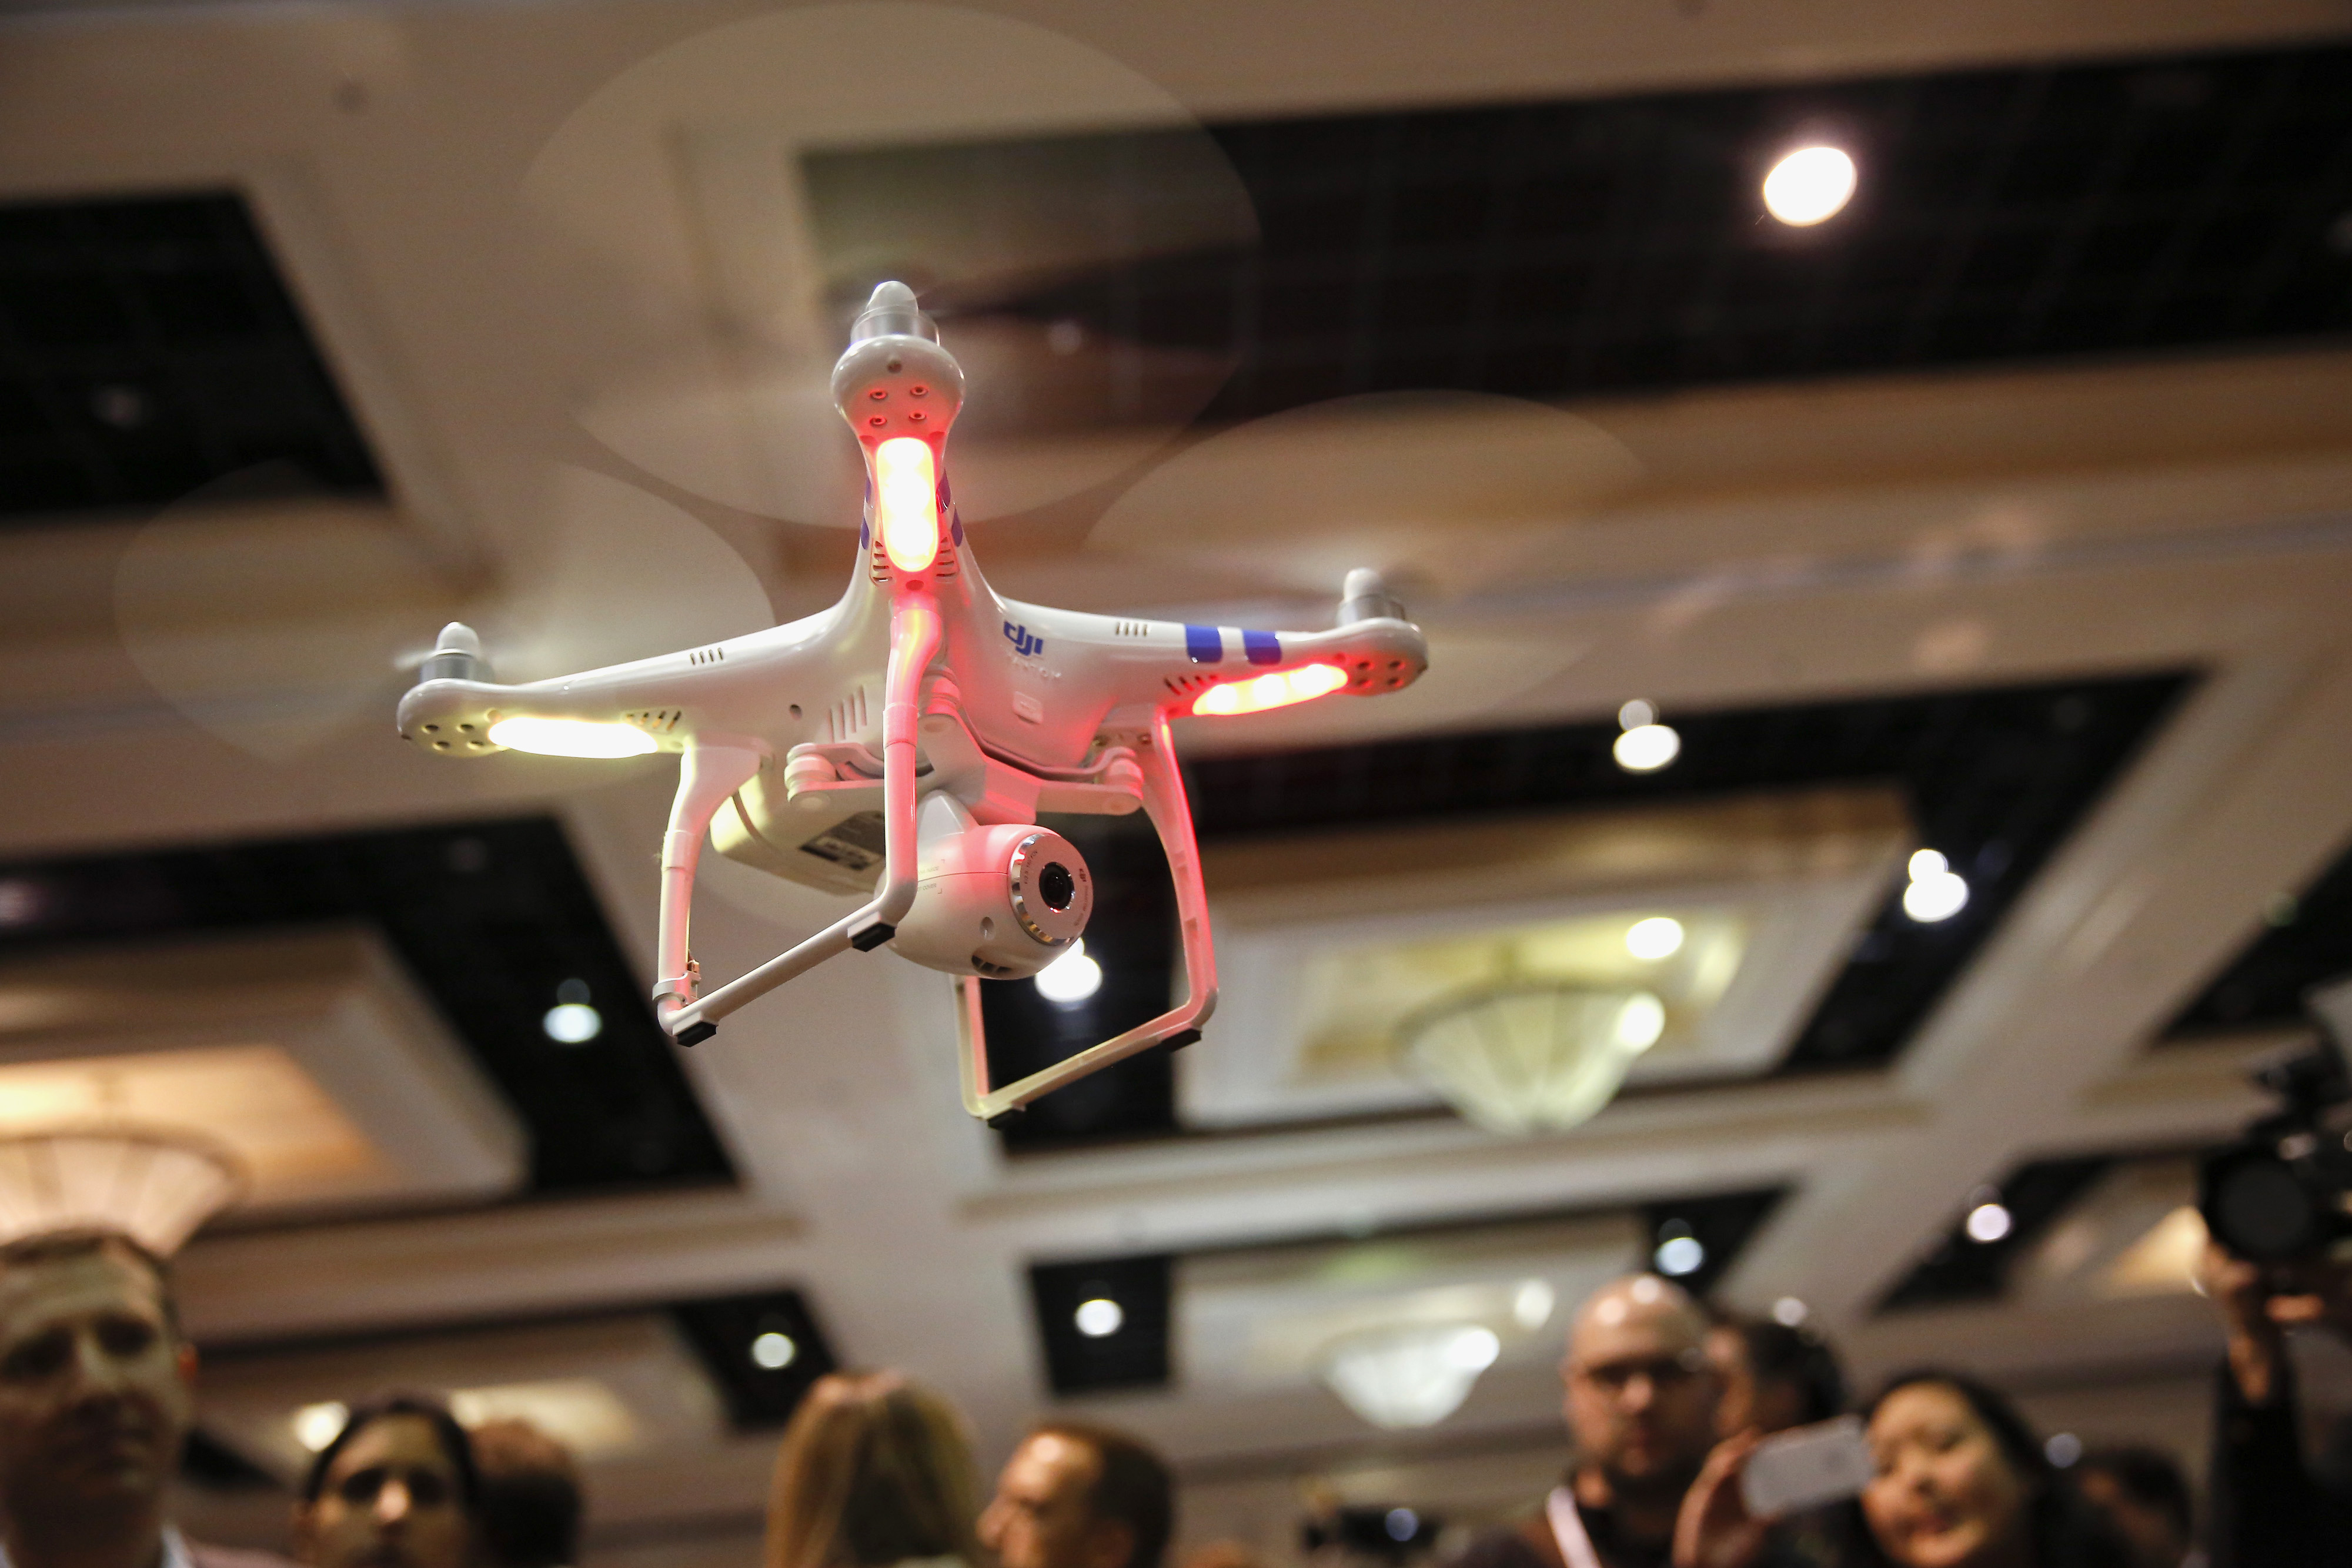 A DJI Innovations Phantom remote-controlled drone hovers above attendees during the CES Unveiled press event prior to the 2014 Consumer Electronics Show in Las Vegas, Nevada, U.S., on Sunday, Jan. 5, 2014.